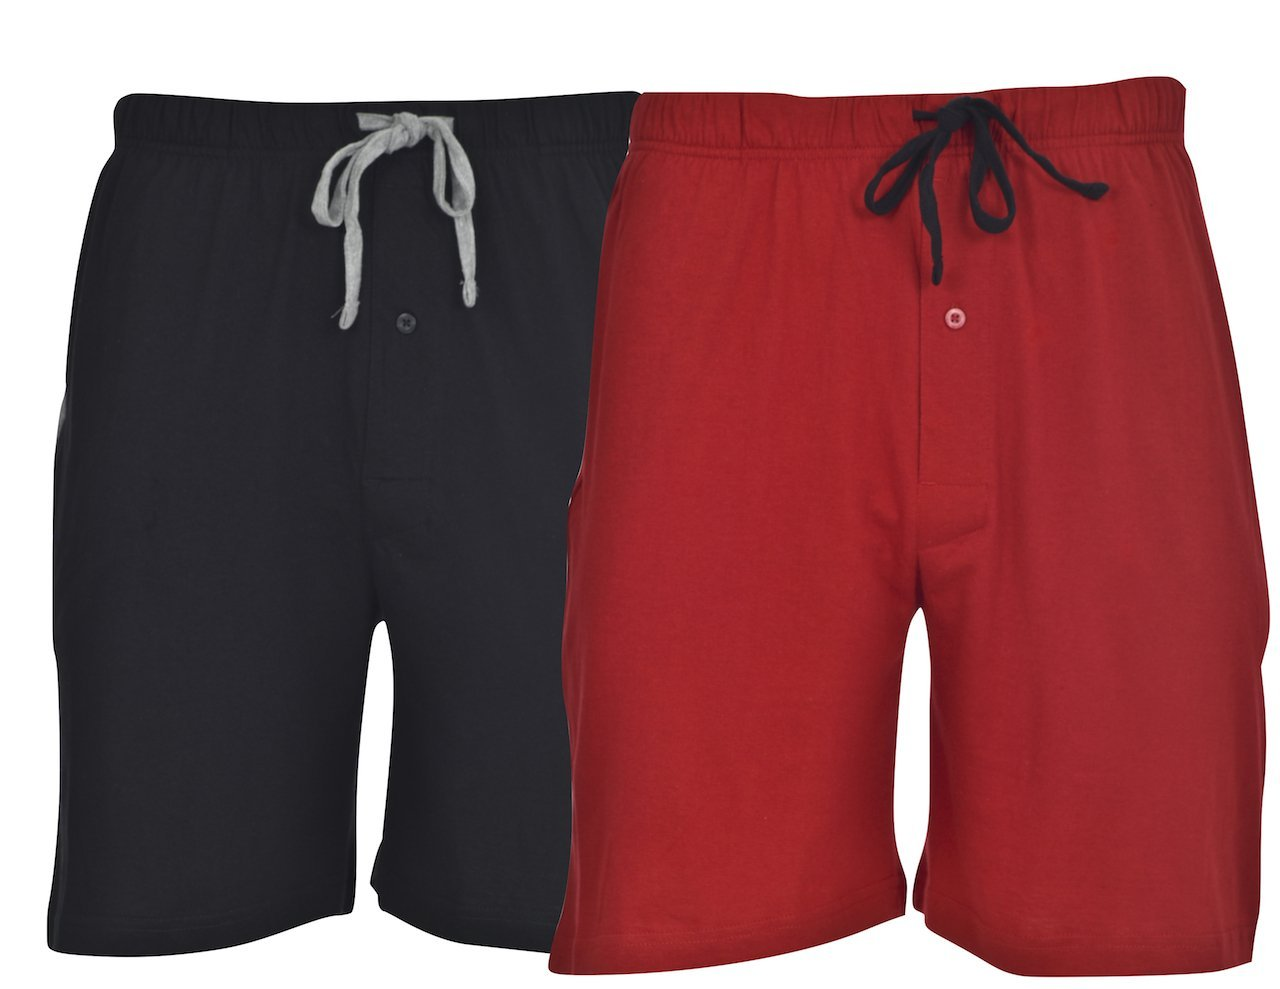 HANES Big Mens Jersey Lounge Drawstring Shorts With Logo Waistband, Red/Black, Pack 2 XXX-Large